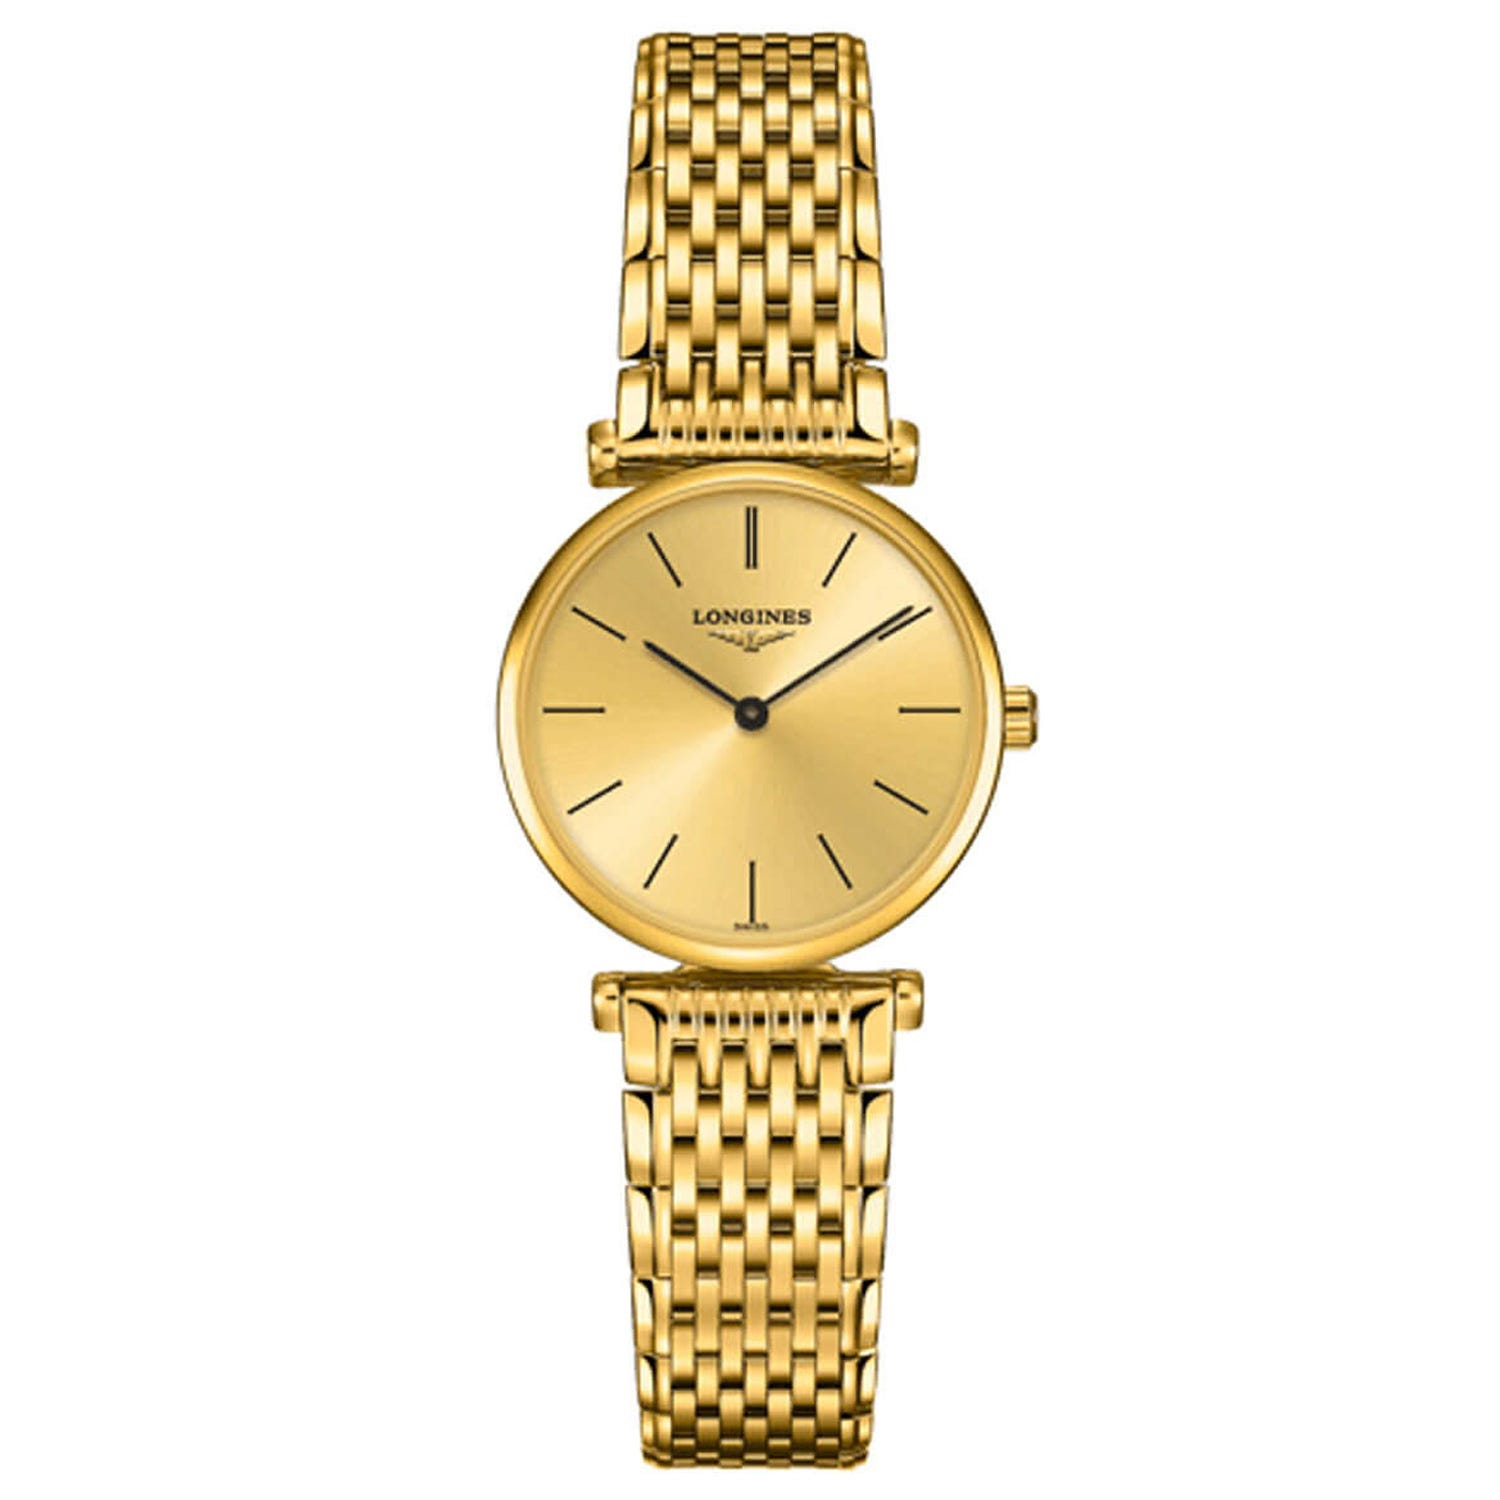 Longines La Grande Classique ladies' gold-tone bracelet watch